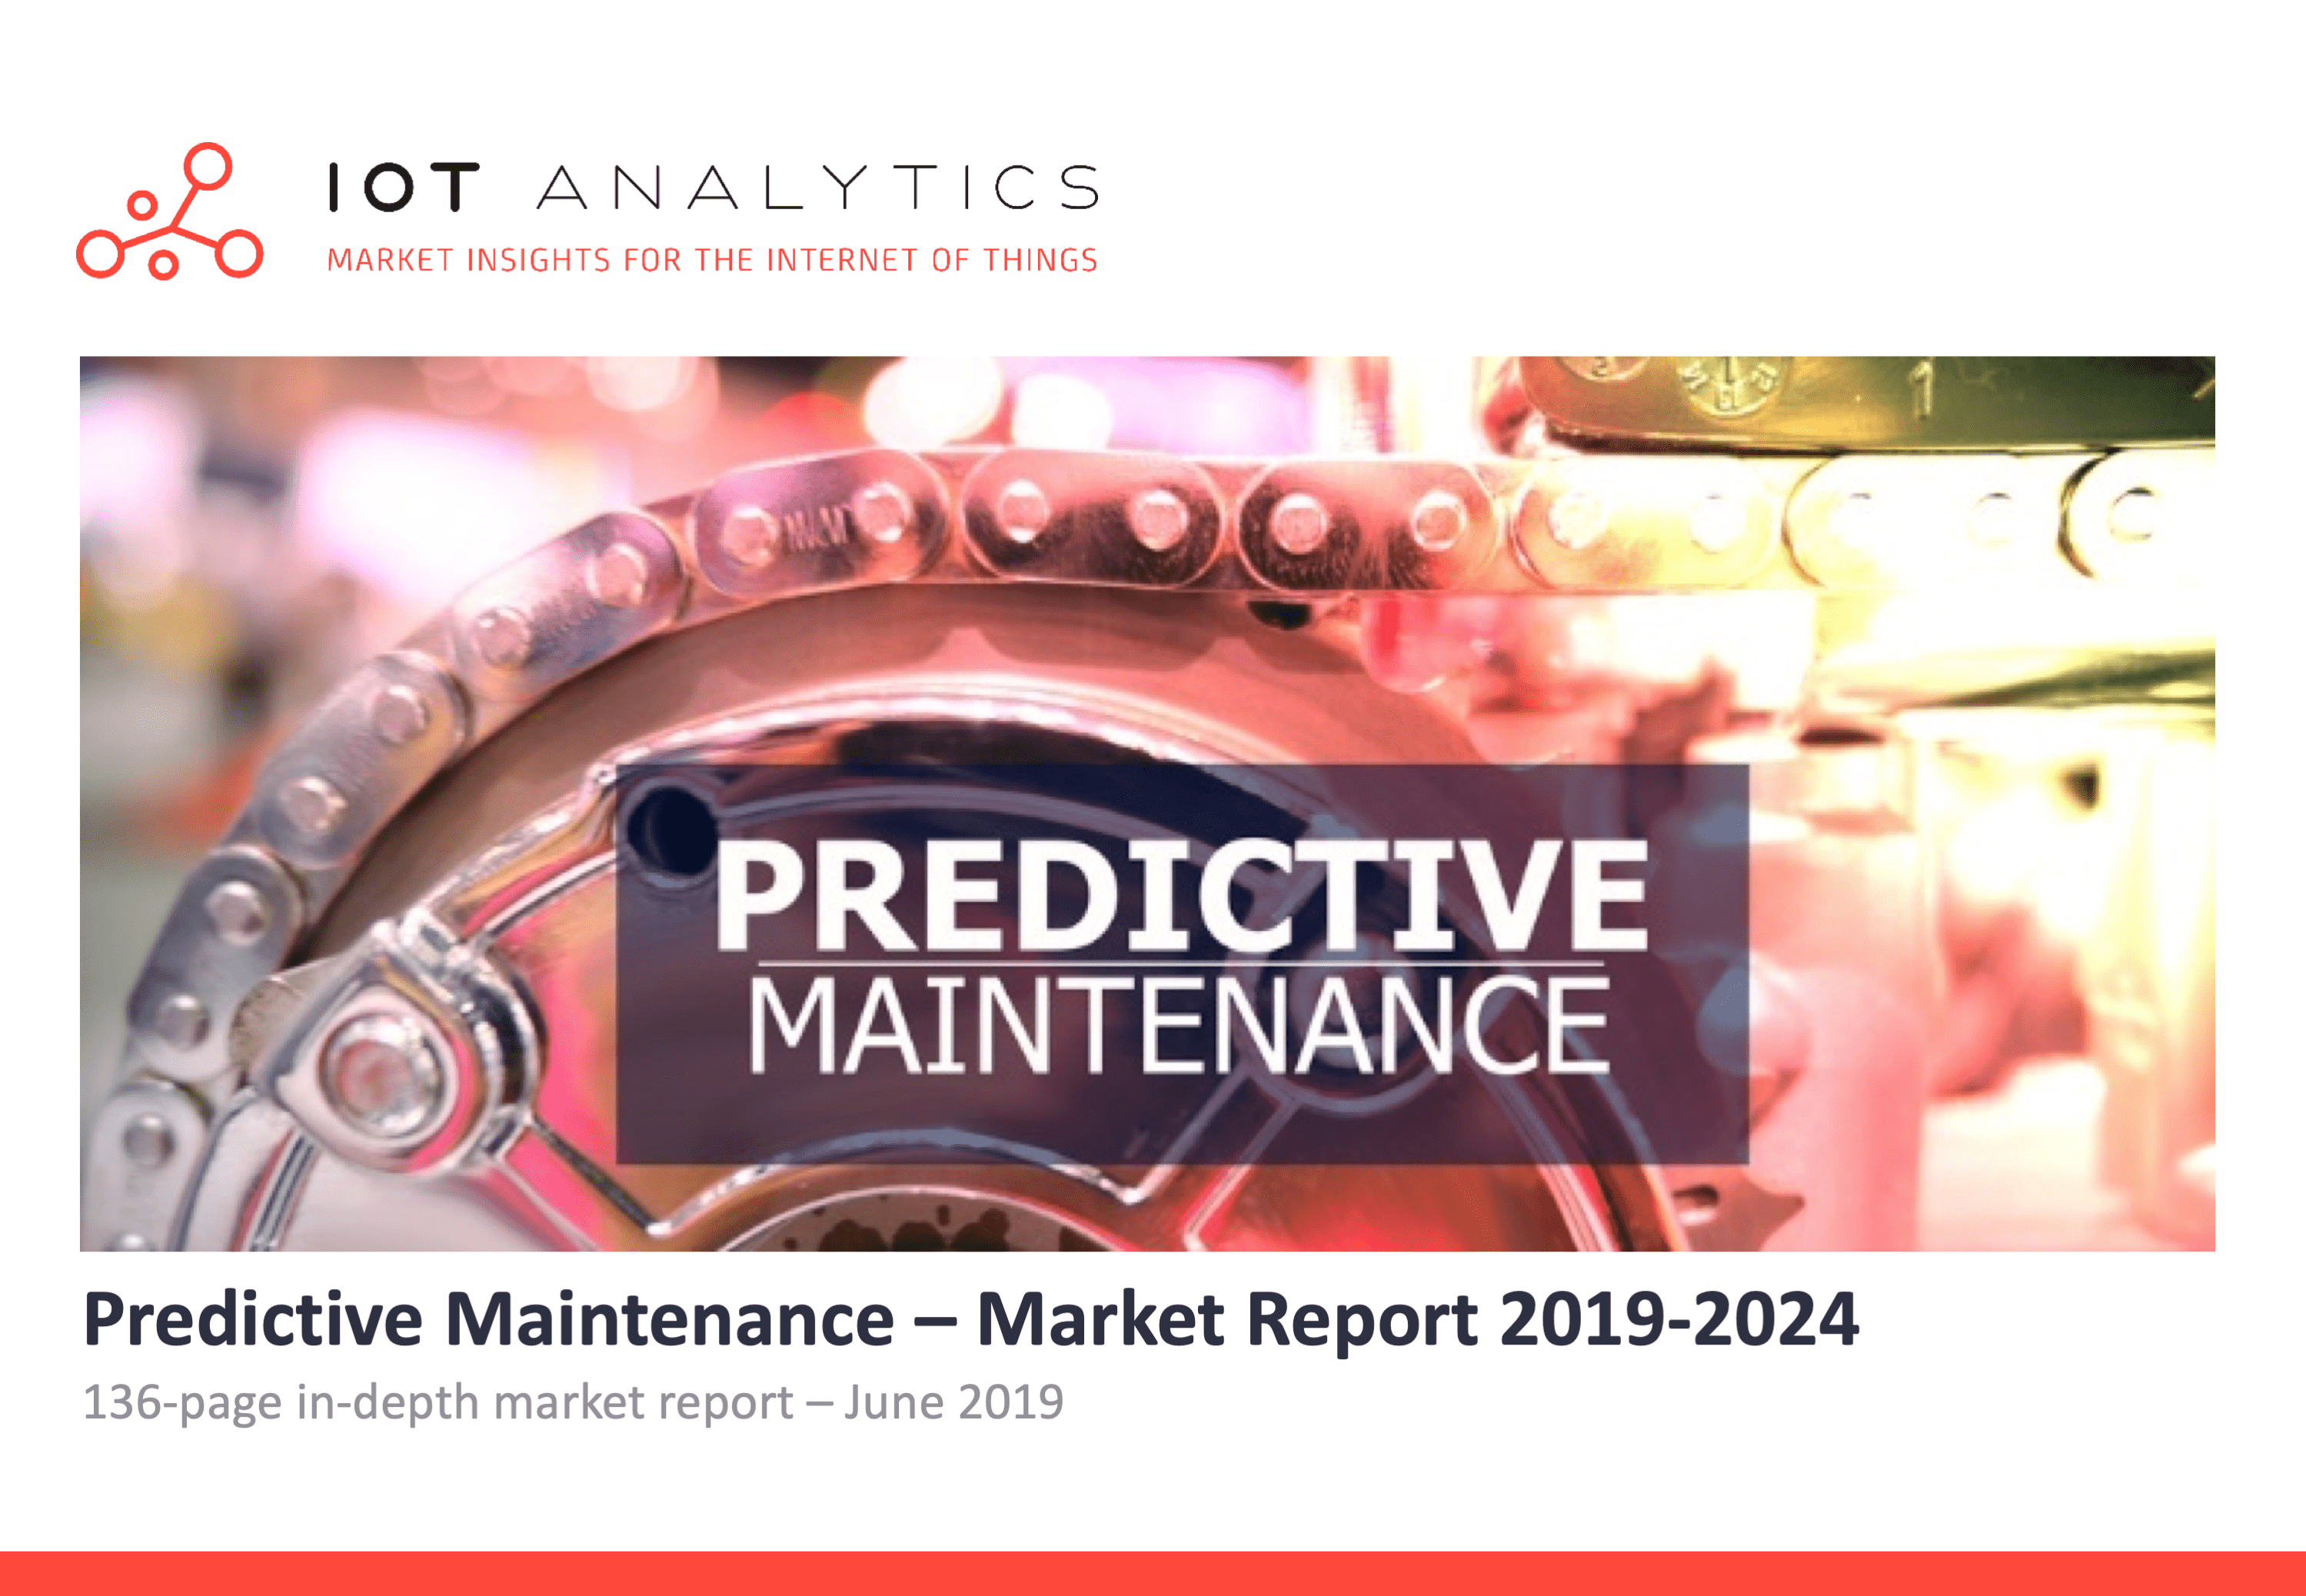 Predictive Maintenance Market Report 2019-2024 Cover